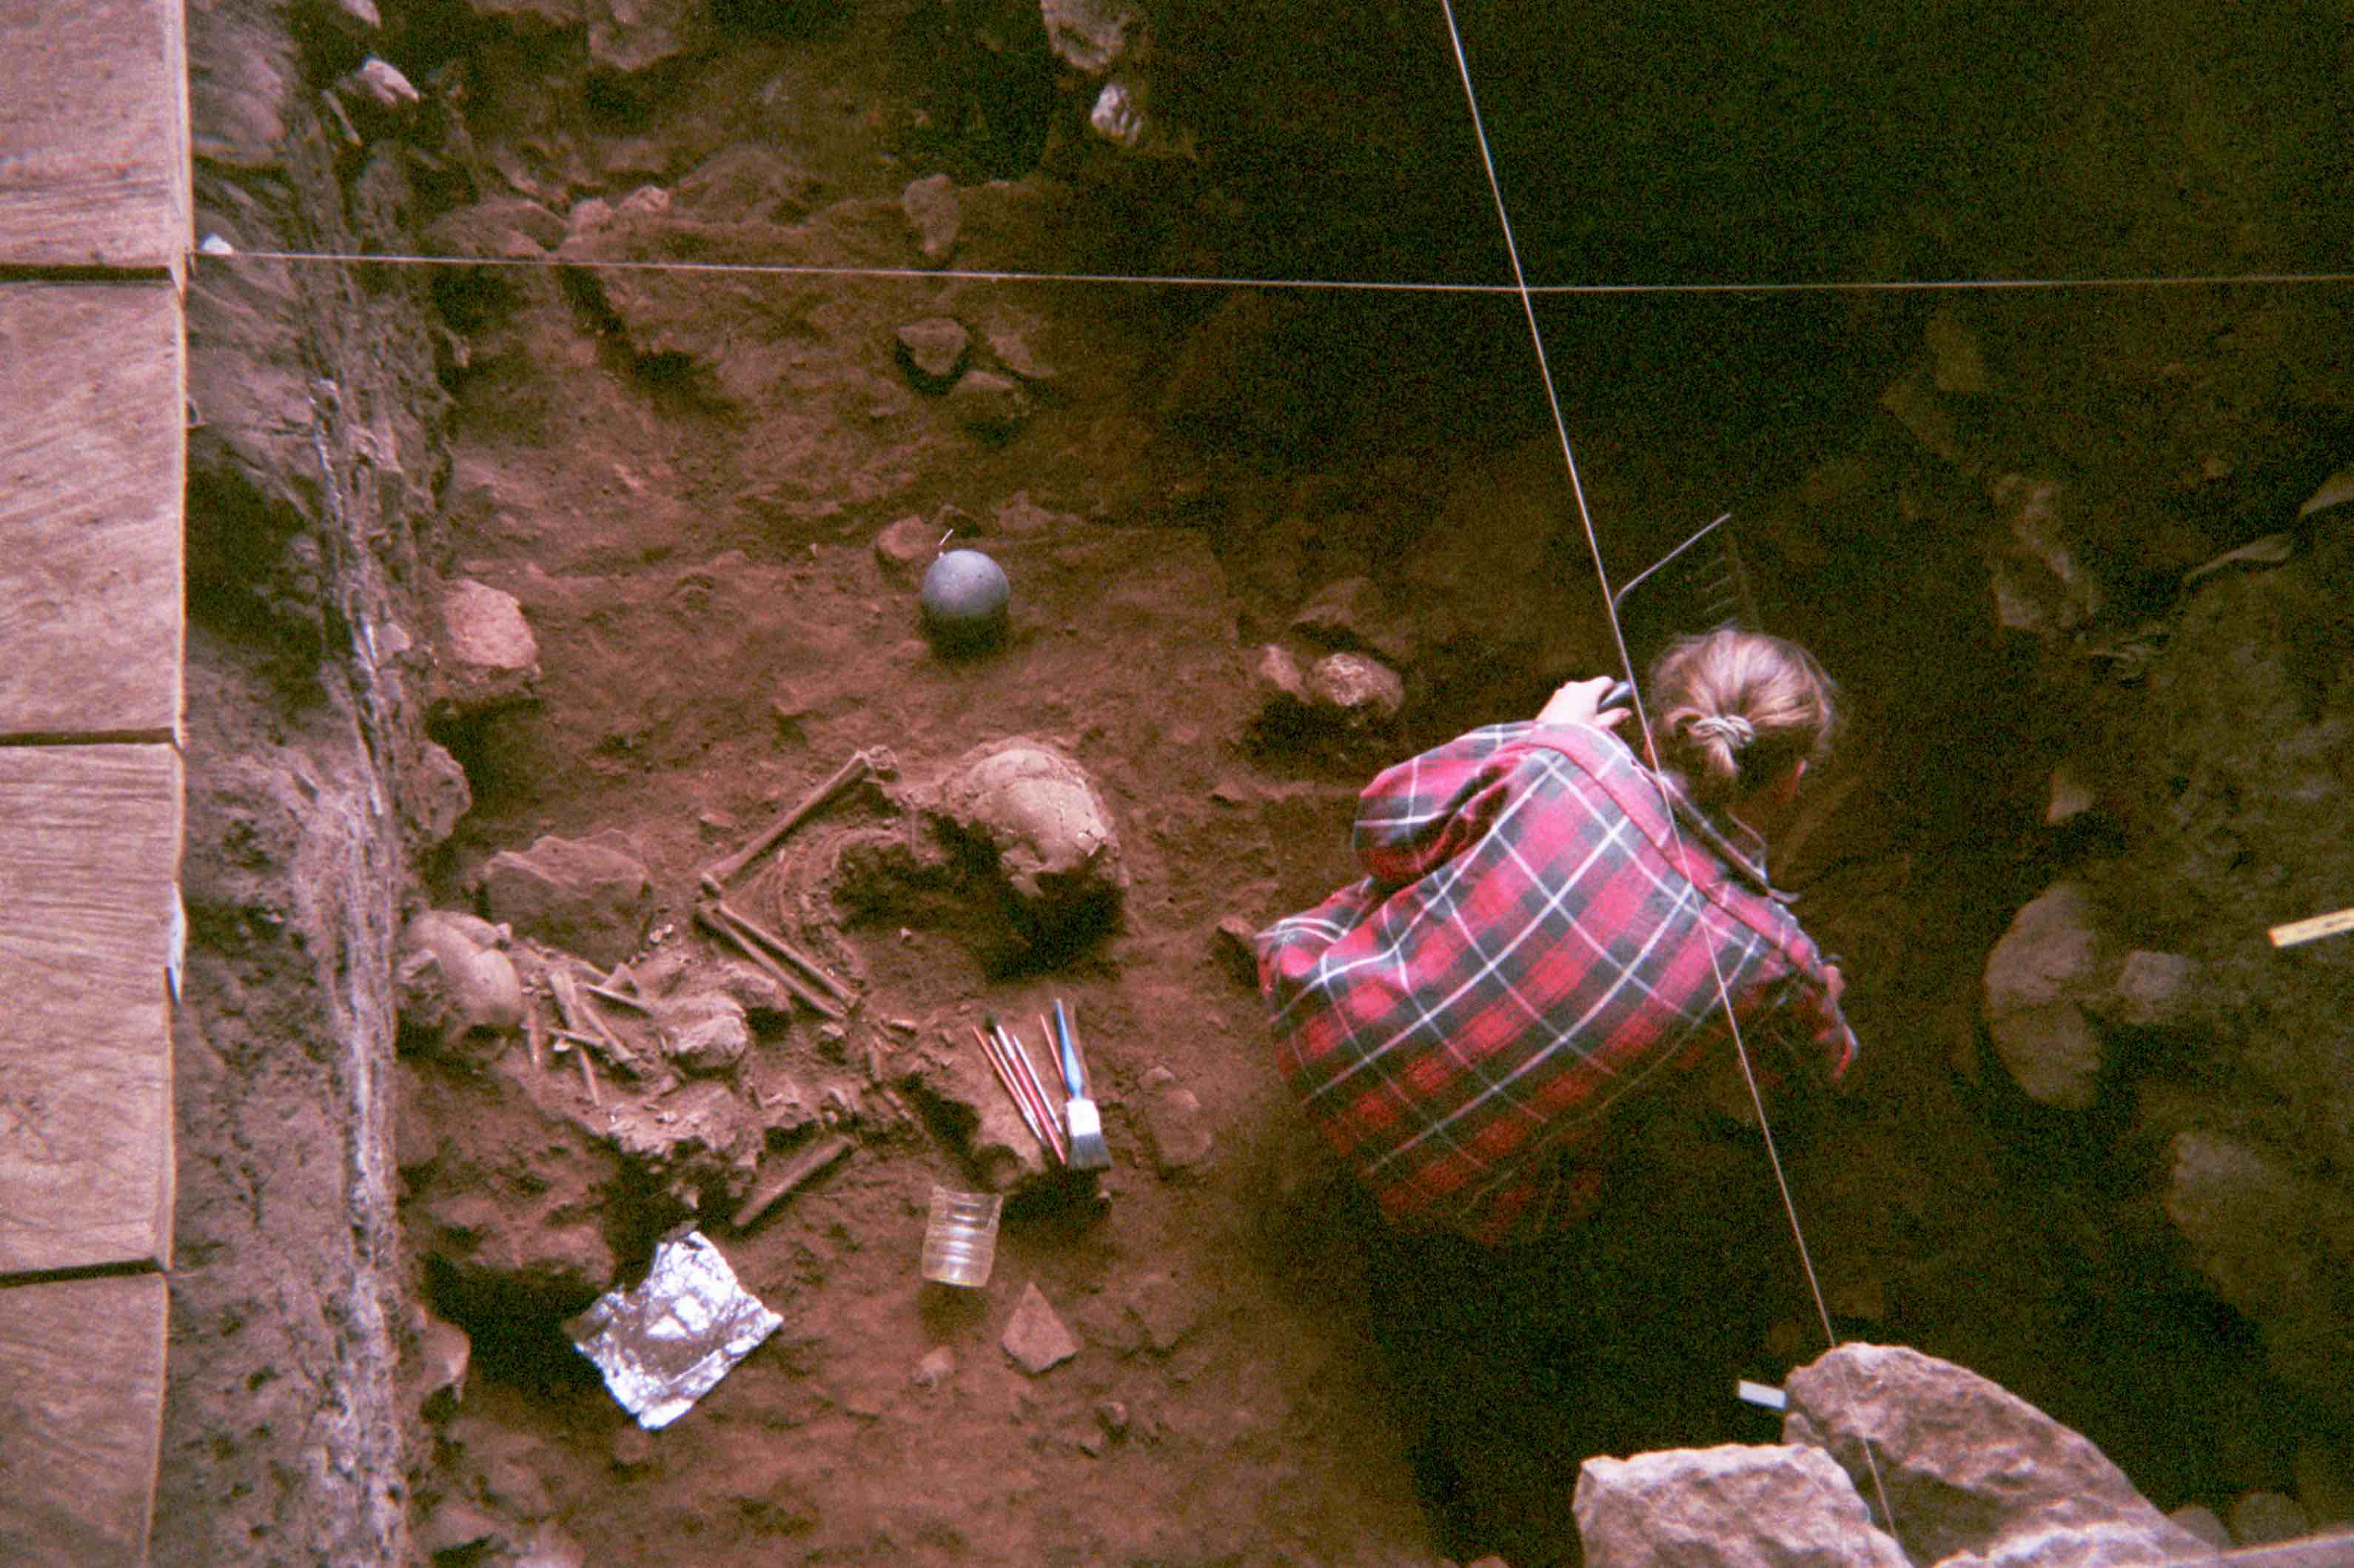 Excavation of a double burial at the Shum Laka rock shelter in Cameroon, which contains the remains of two children who lived circa 8,000 years ago and were genetically from the same family (foto de Isabelle Ribot, enero de 1994).